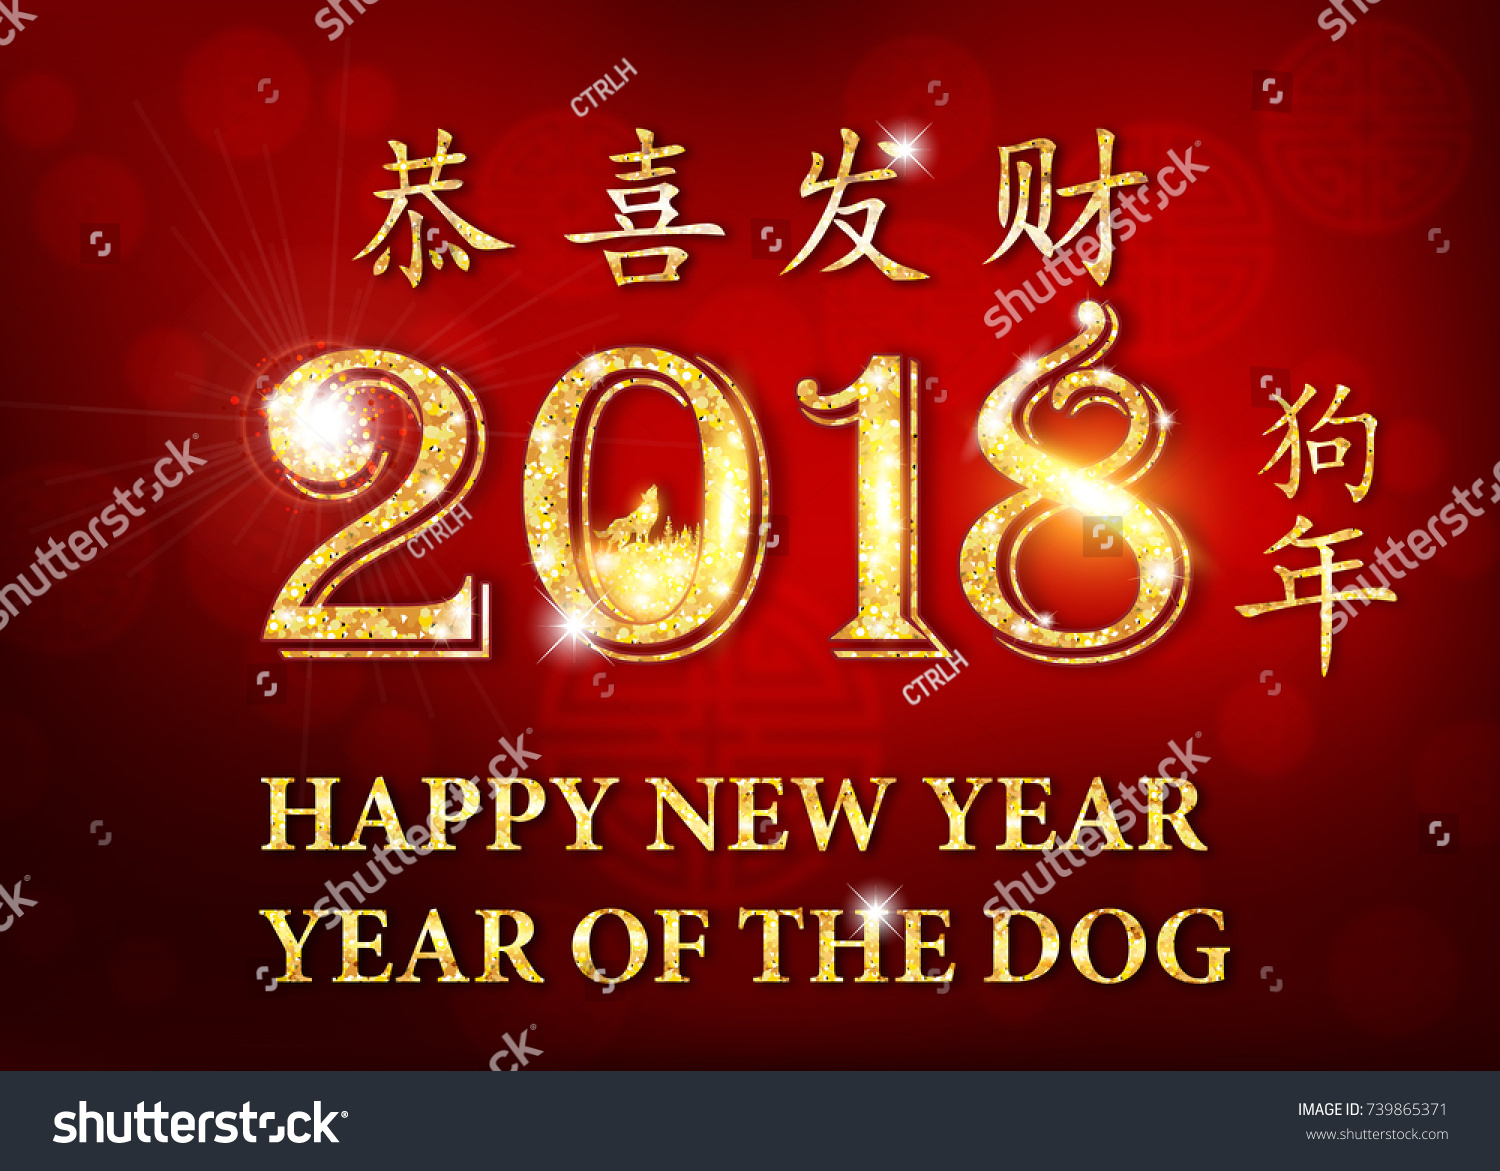 Happy chinese new year dog greeting stock illustration 739865371 happy chinese new year of the dog greeting card for the chinese spring festival celebrations kristyandbryce Choice Image